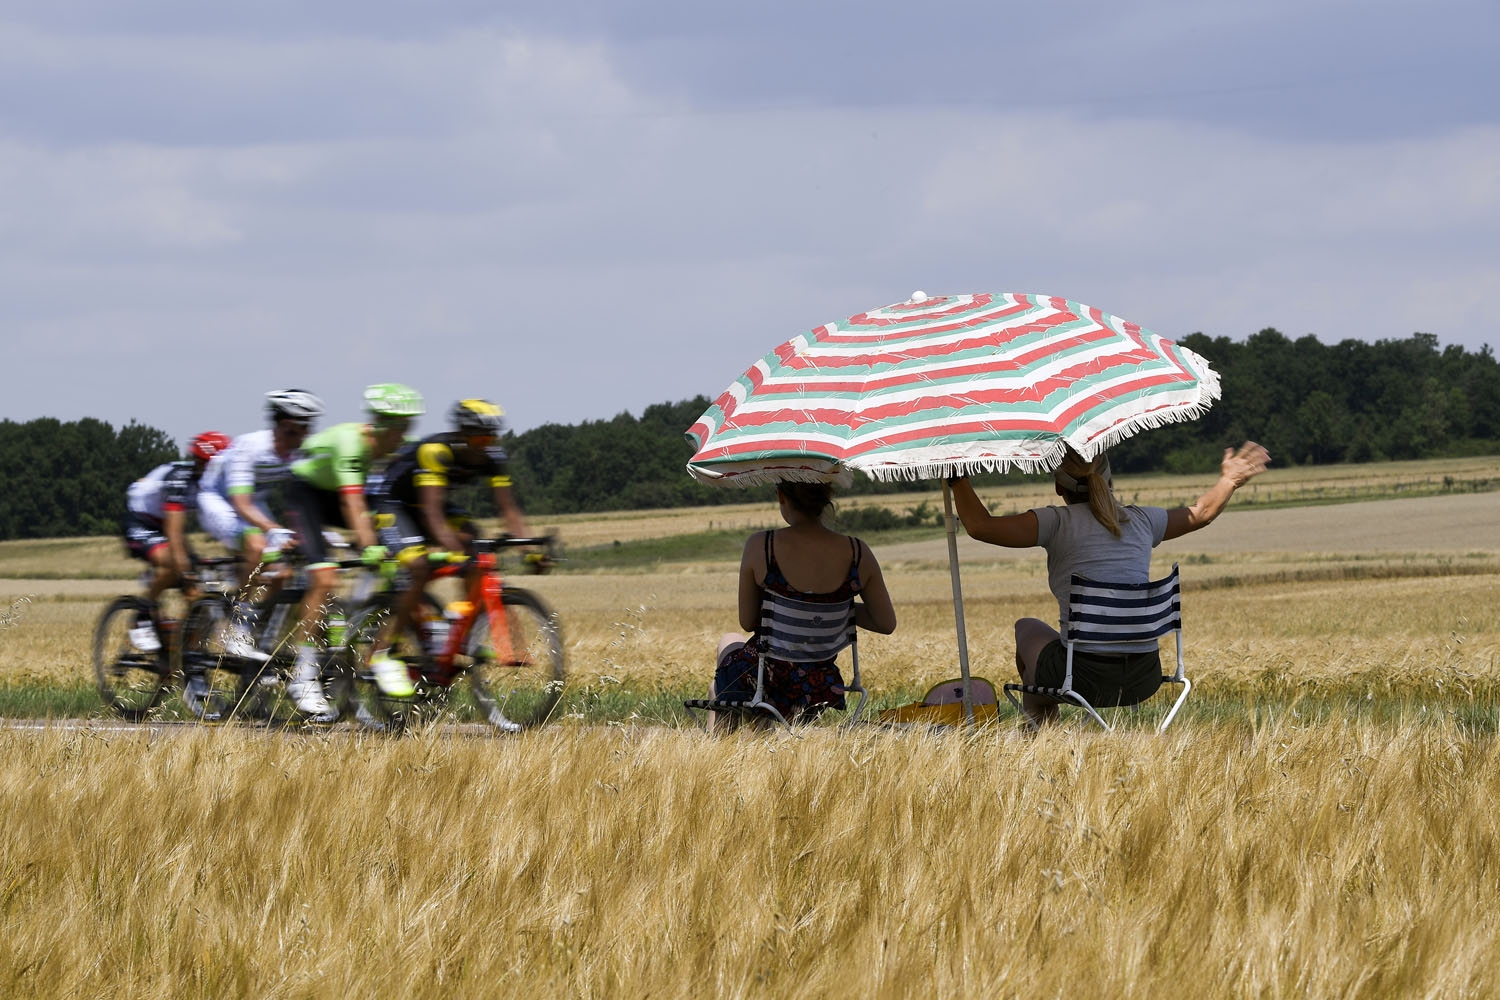 Supporters sitting under a parasol look at the breakaway riding during the 213,5 km seventh stage of the 104th edition of the Tour de France cycling race on July 7, 2017 between Troyes and Nuits-Saint-Georges